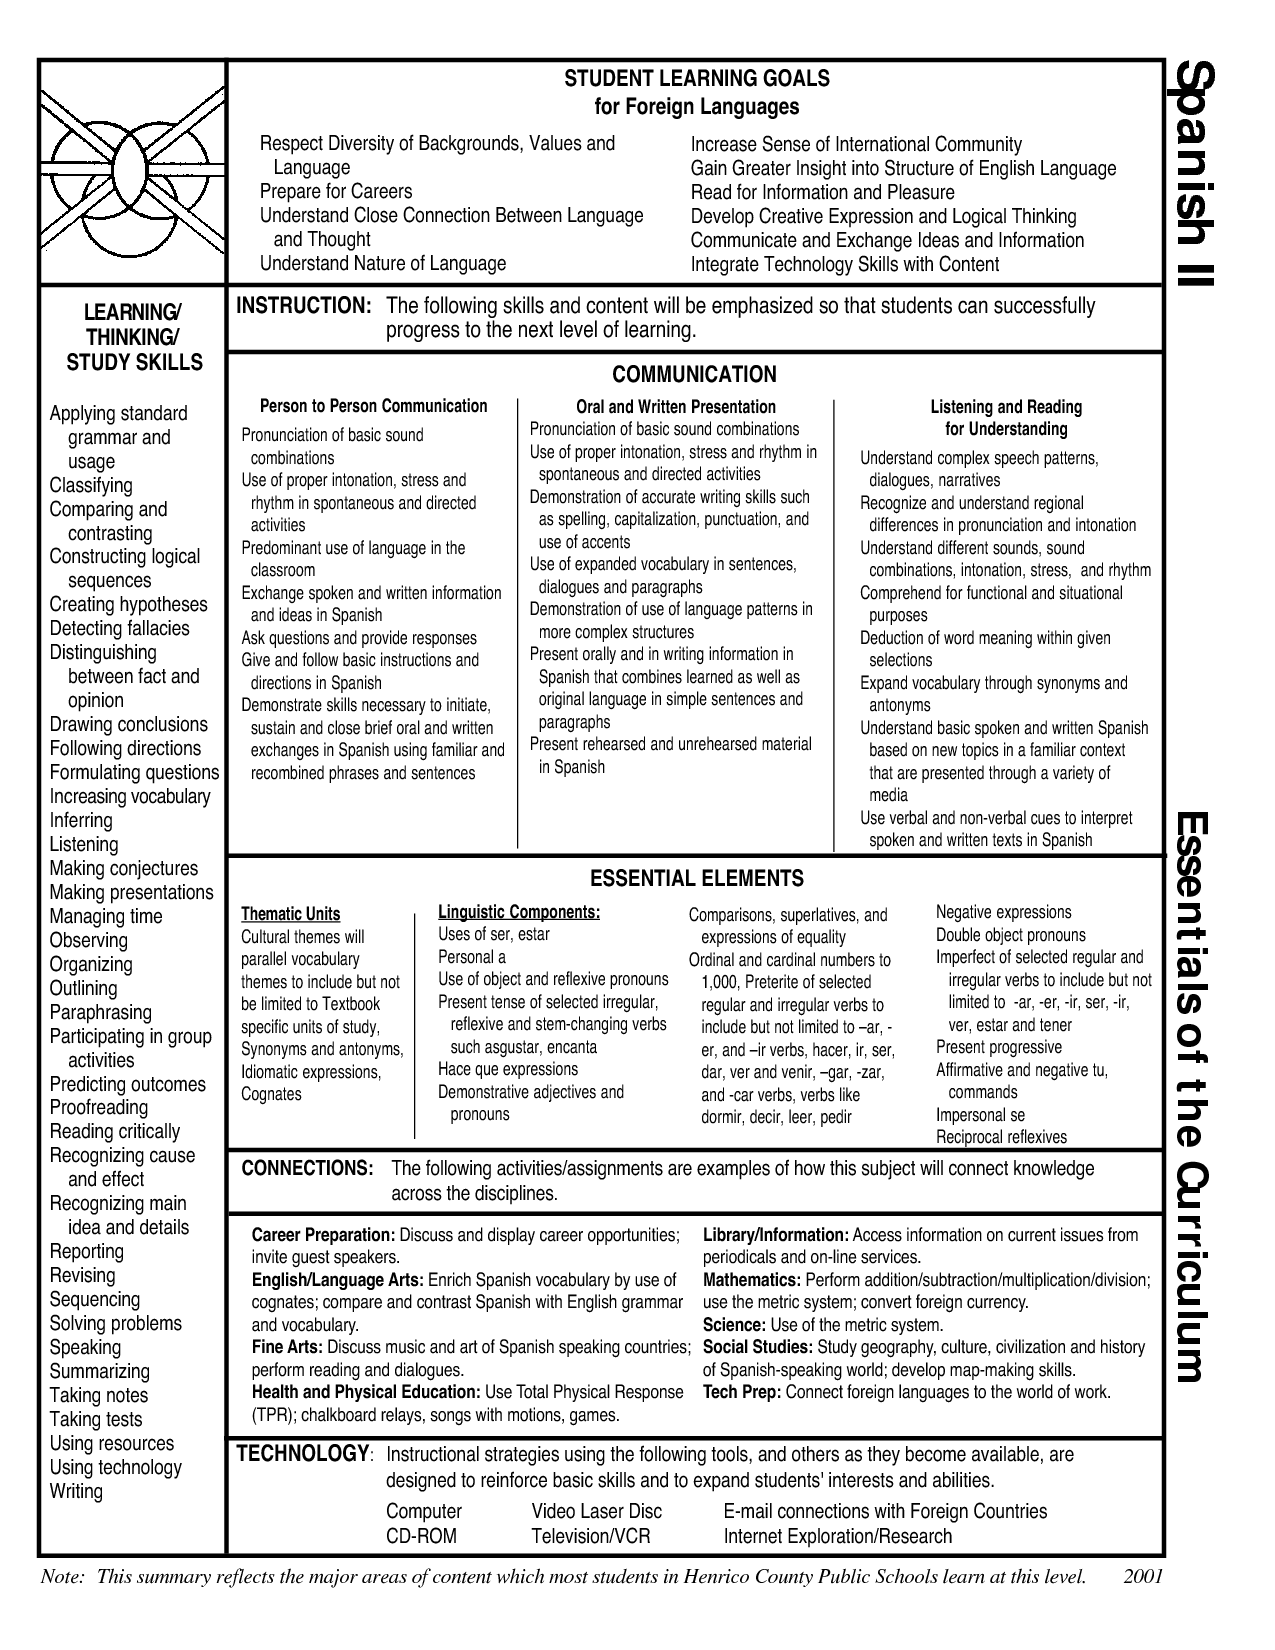 Scope Of Work Template Learning Goal Student Logical Thinking Paraphrasing In Oral Communication